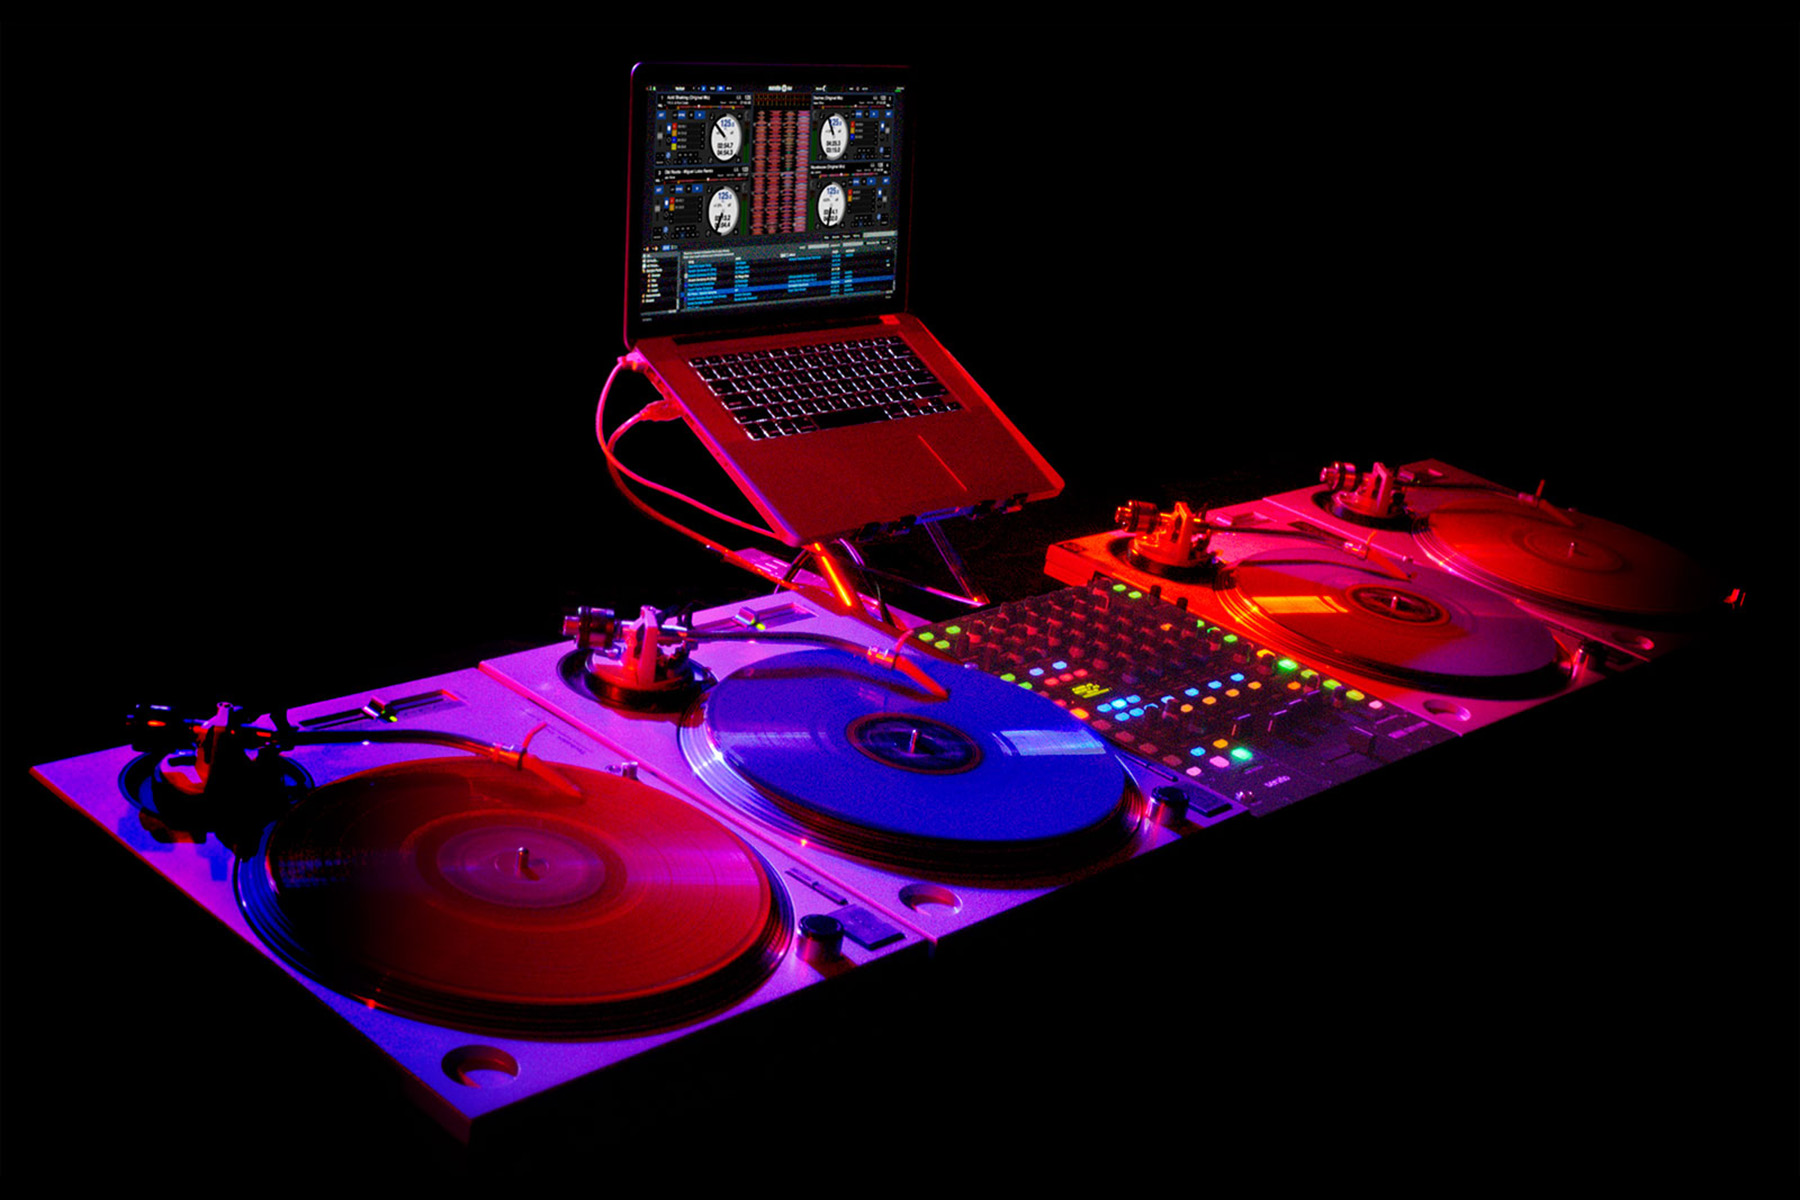 Dj Turntable Wallpaper High Quality Resolution : Music Wallpaper 1800x1200